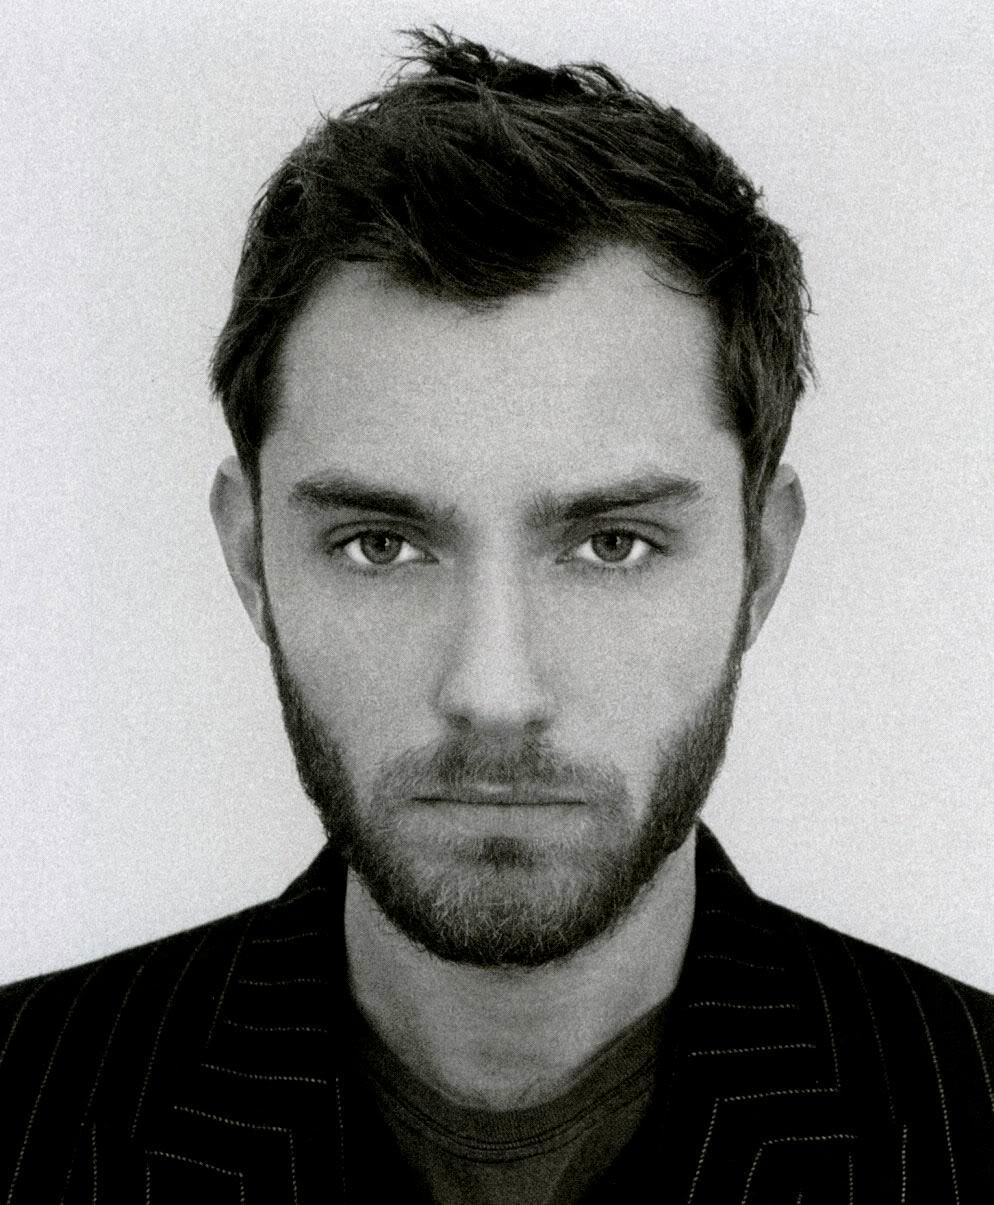 Jude Law - Jude Law Photo (15179960) - Fanpop Jude Law